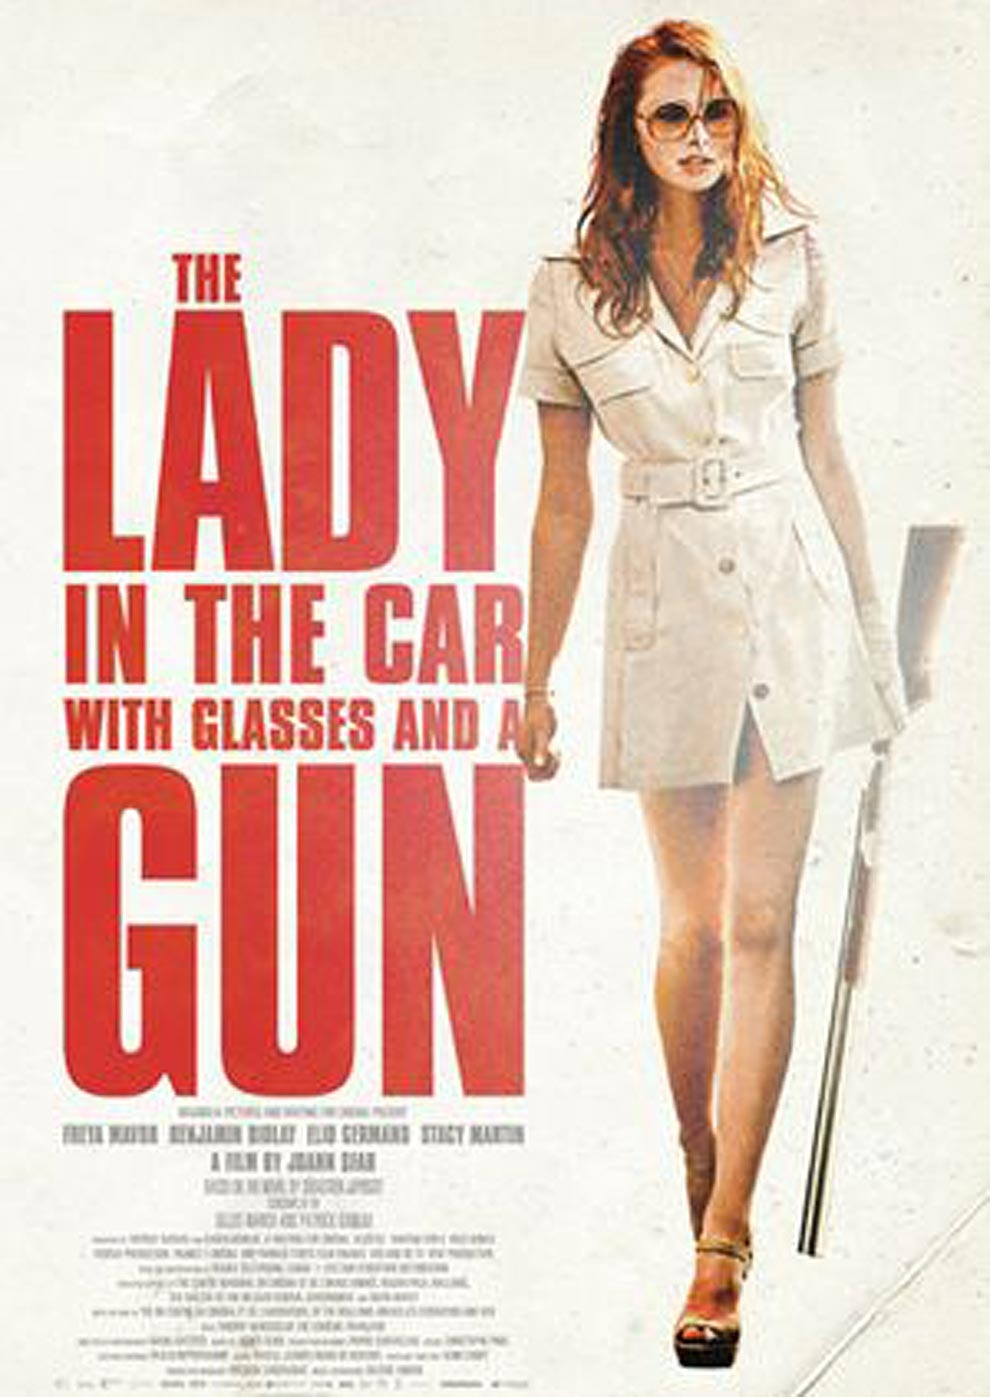 The Lady in the Car with Glasses and a Gun (Poster)